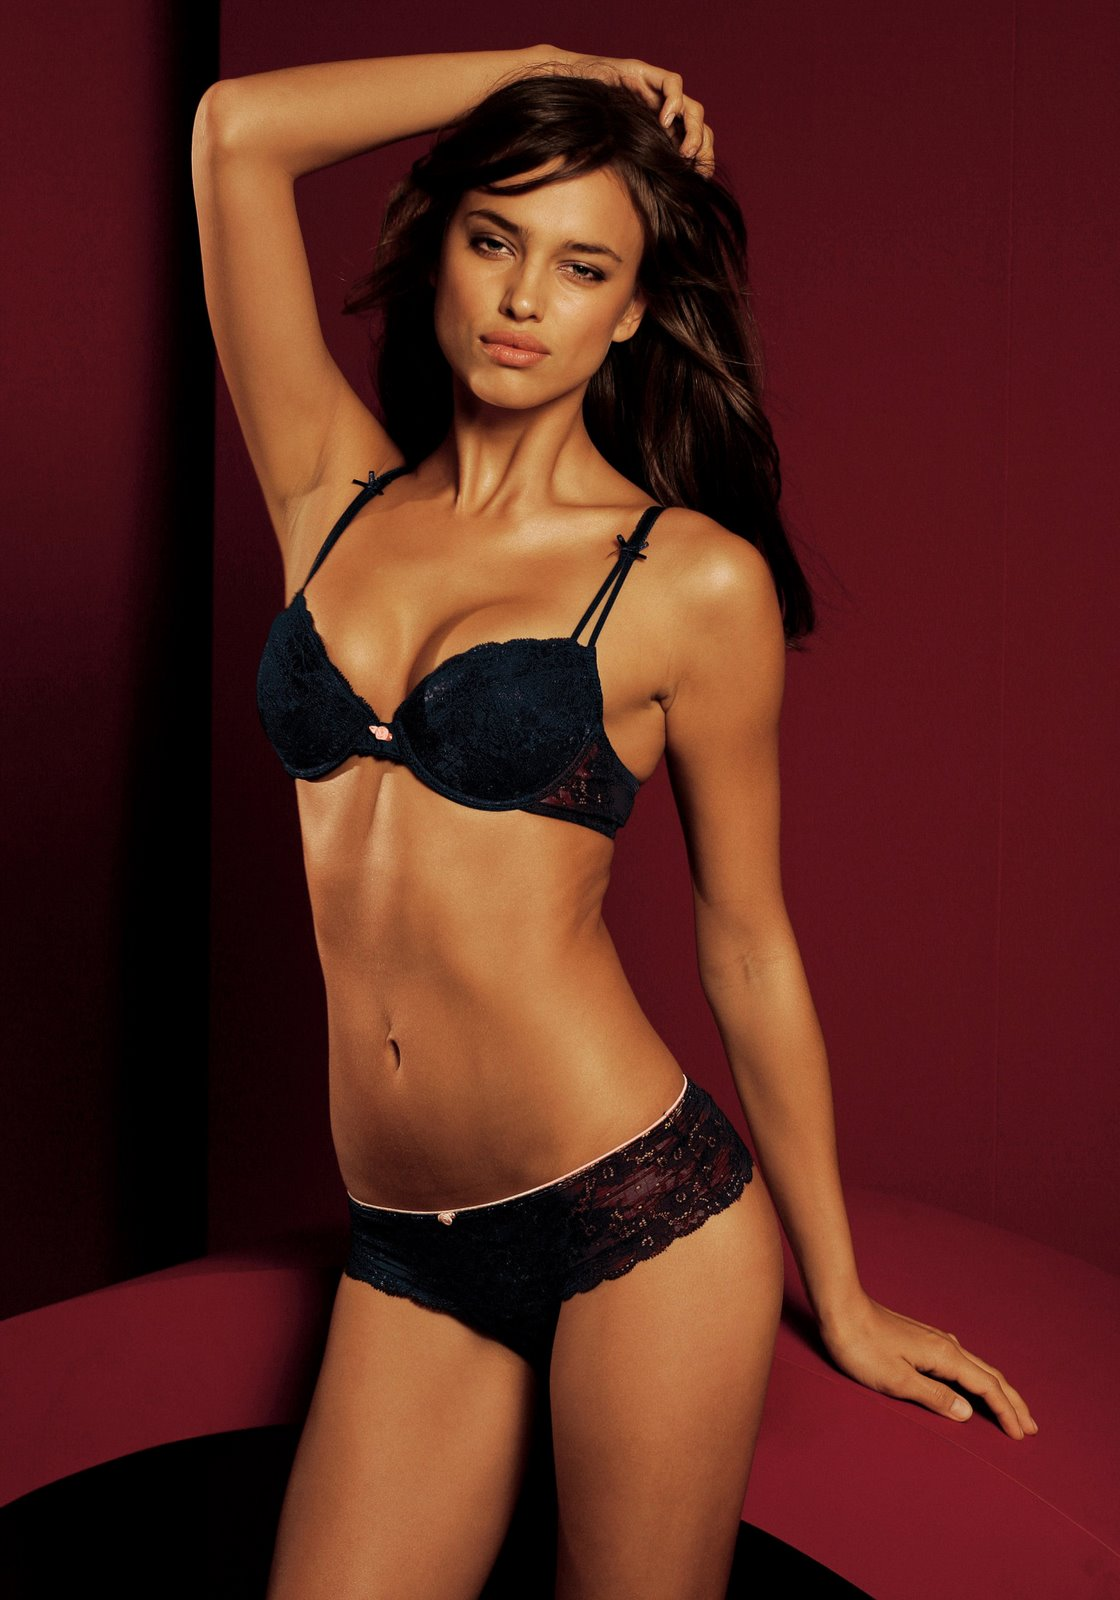 windows on beauty images: Irina Shayk, lingerie model